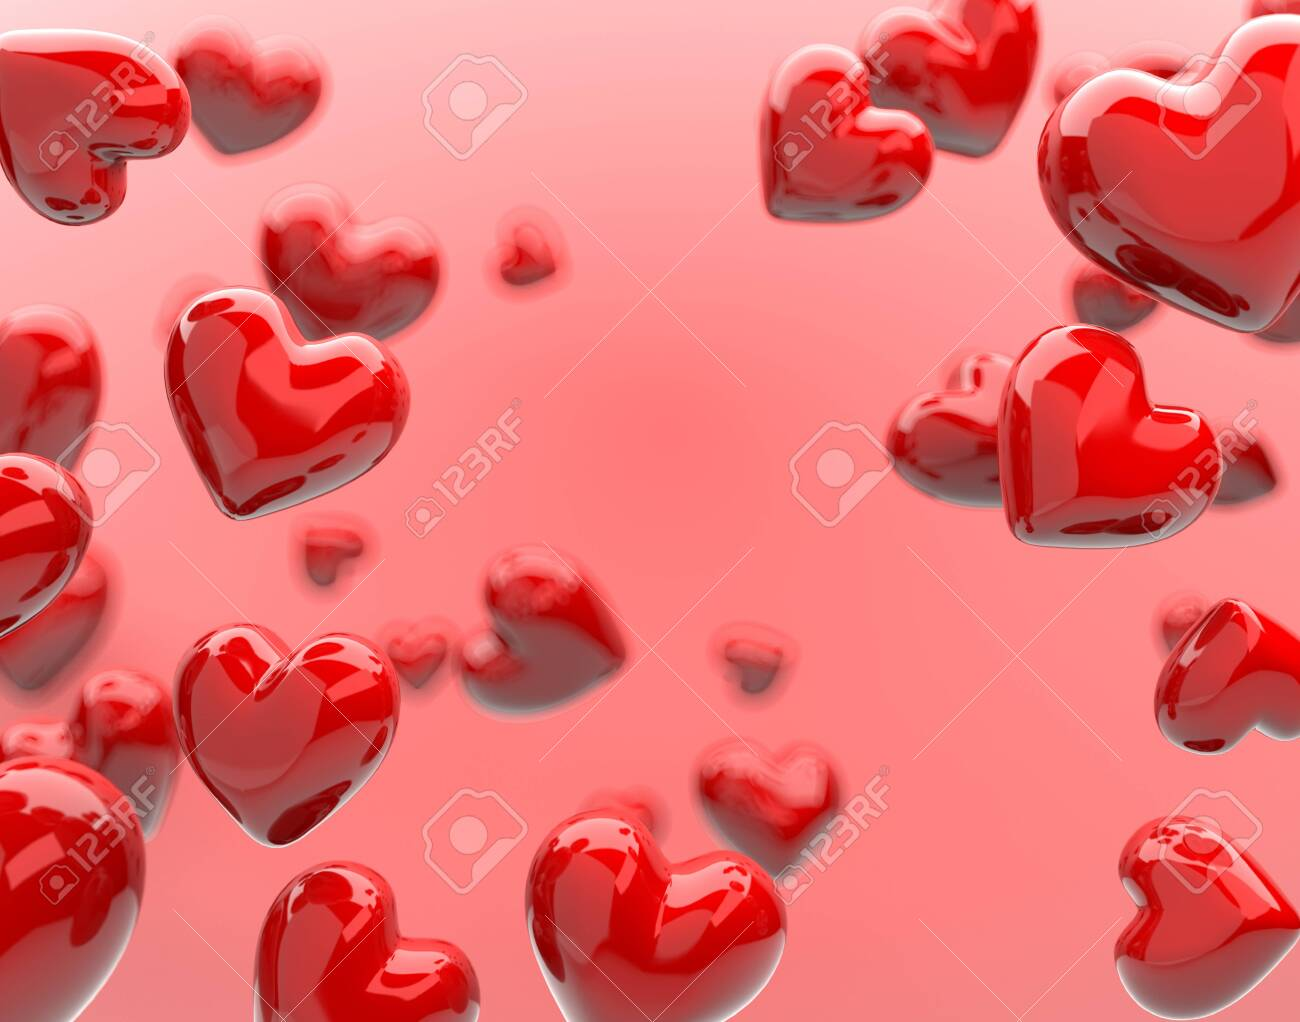 The valentine's Day background with red hearts on pink,3d render. - 135996189